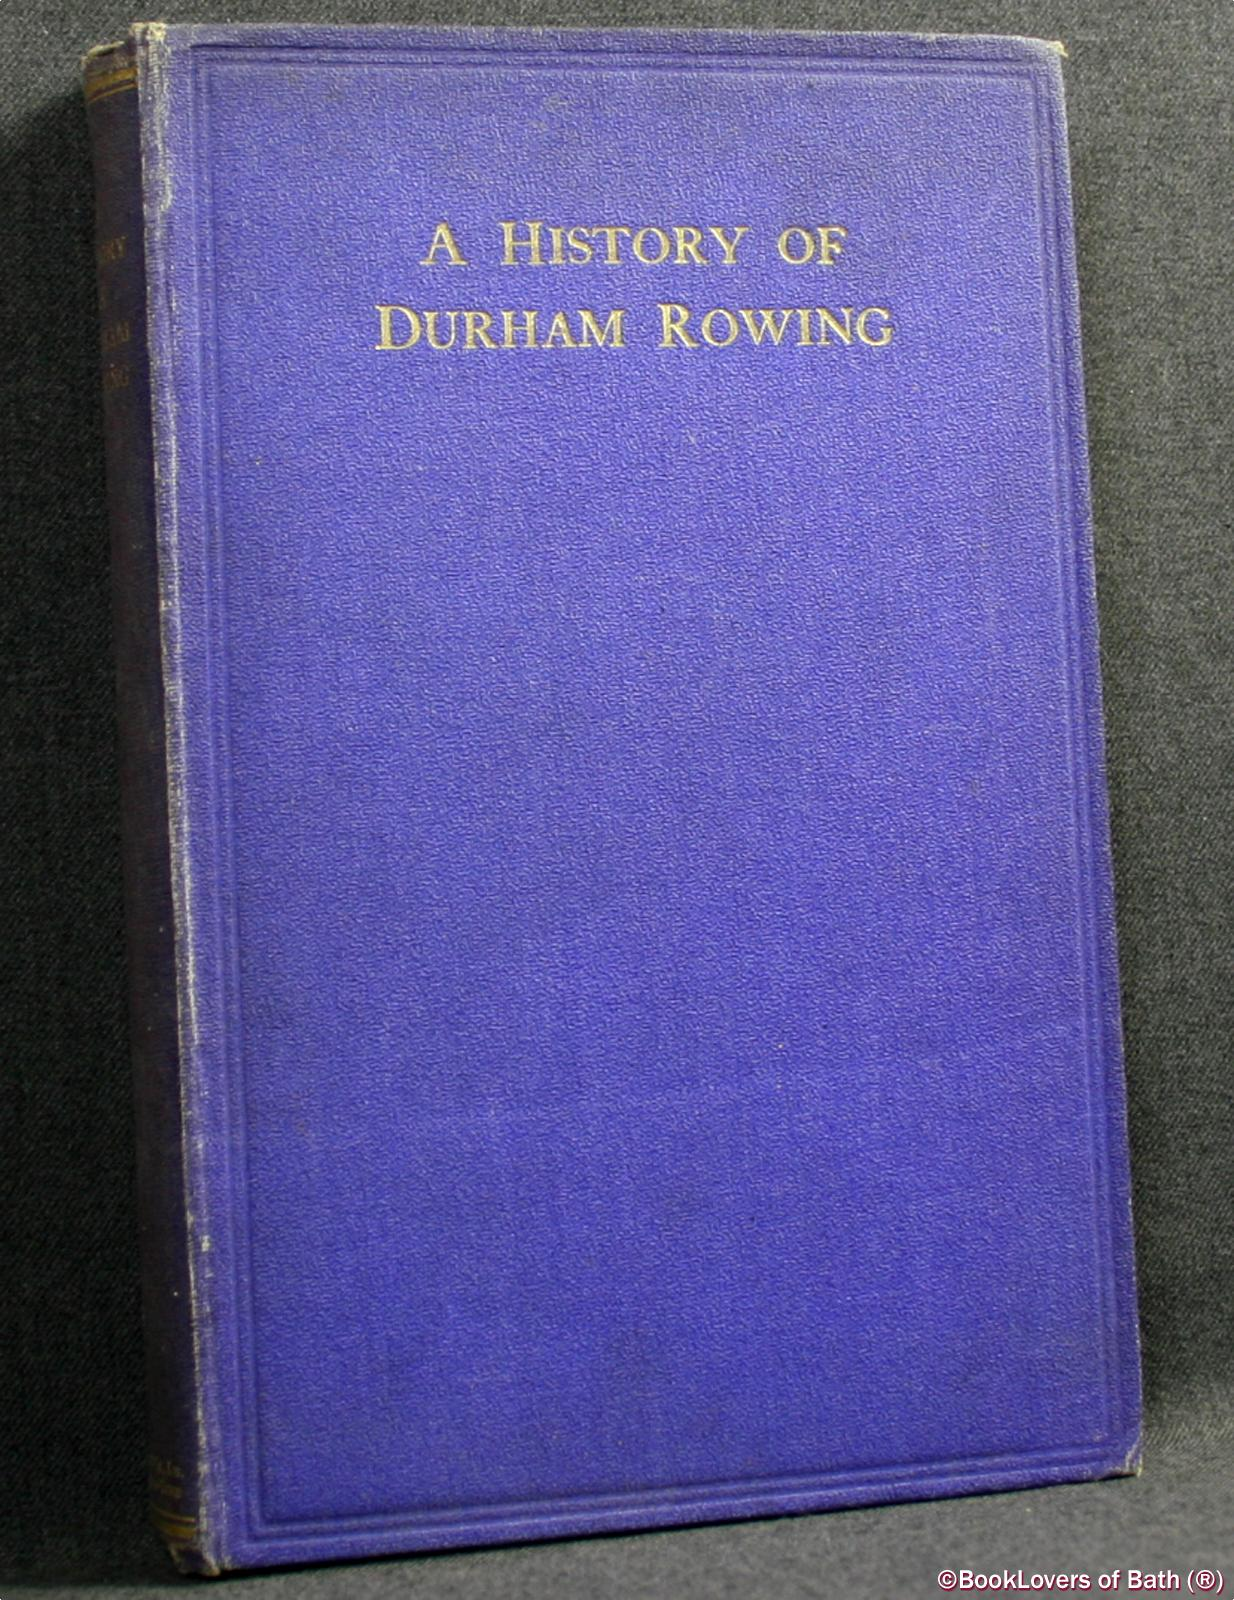 "A History of Durham Rowing: Including Also ""Durham School Rowing"" by R. H. J. Poole and ""The Durham Amateur Rowing Club"" by J. G. Burrell - A. A. [Angus Alexander] MacFarlane-Grieve"